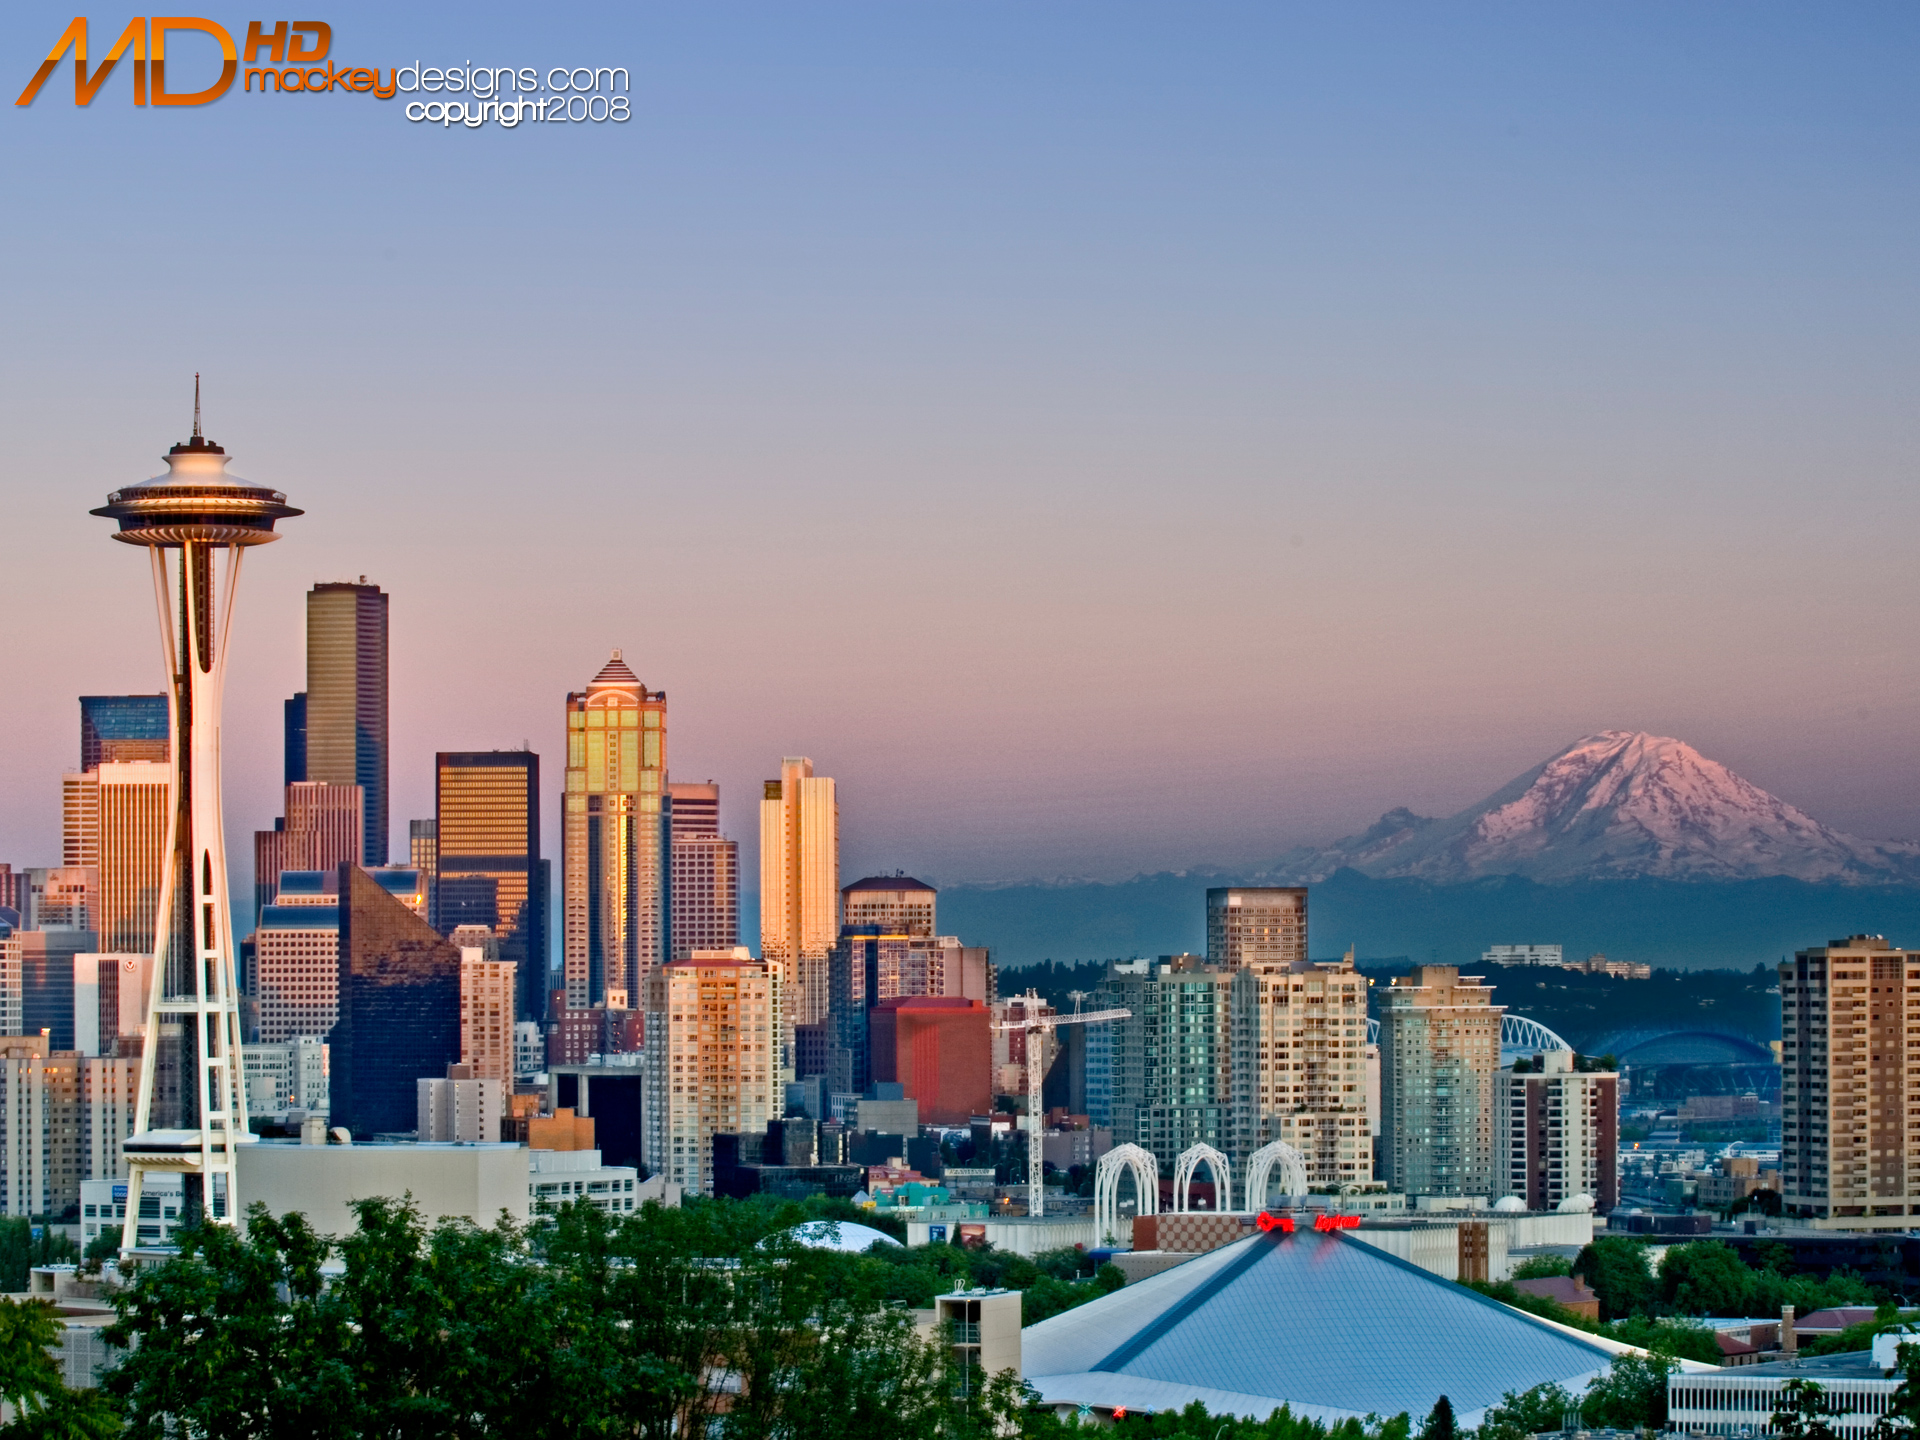 Awesome Seattle wallpaper Cities wallpapers 1920x1440